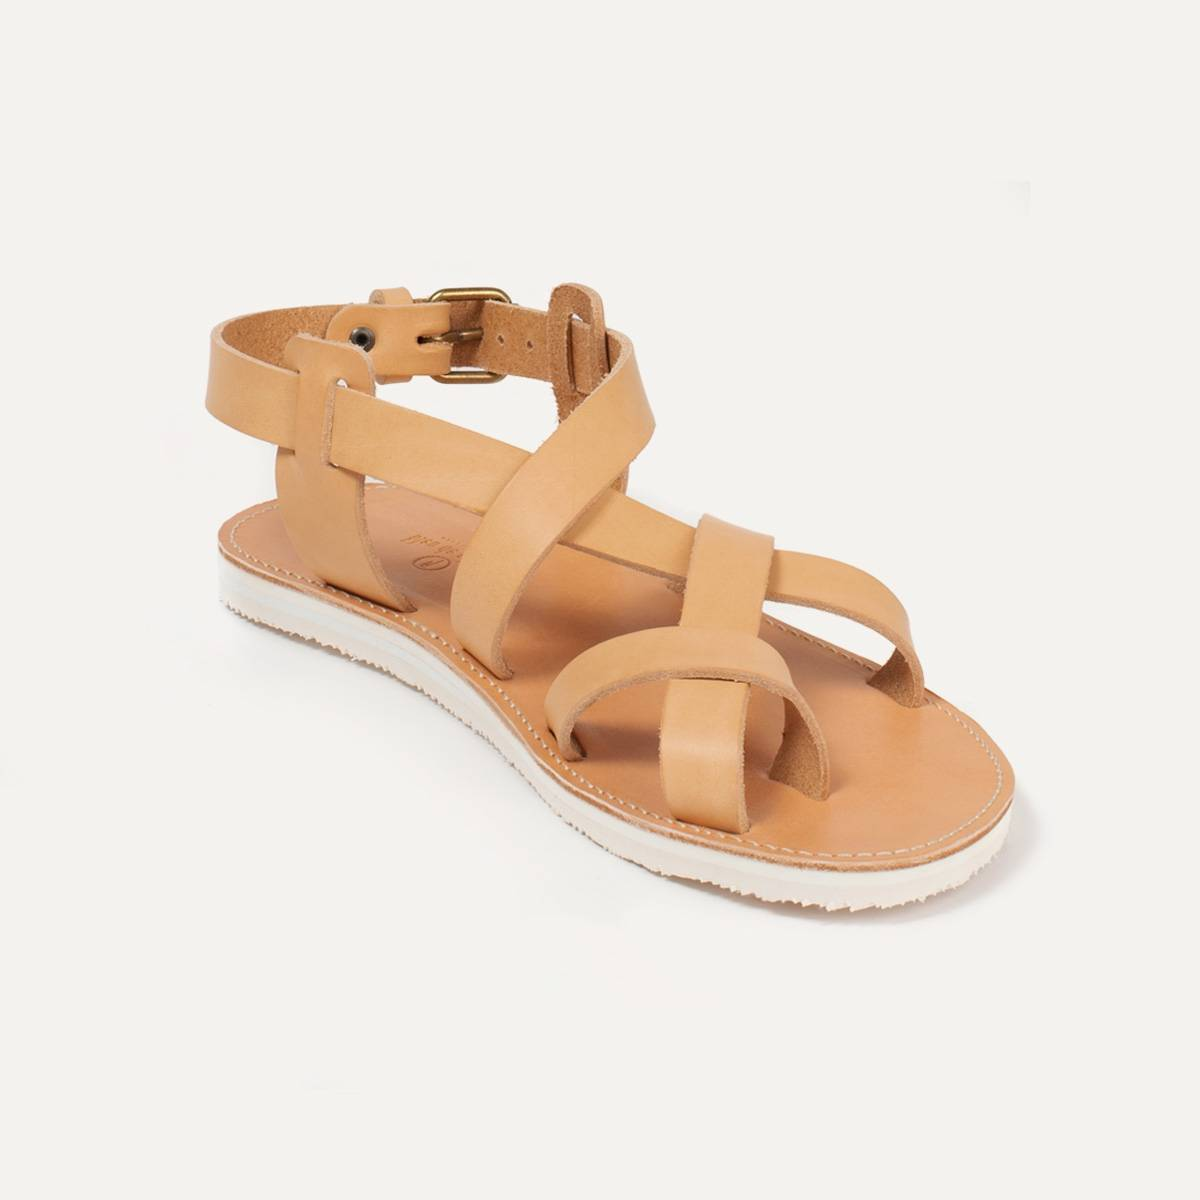 Lhassa leather sandals - Natural (image n°2)